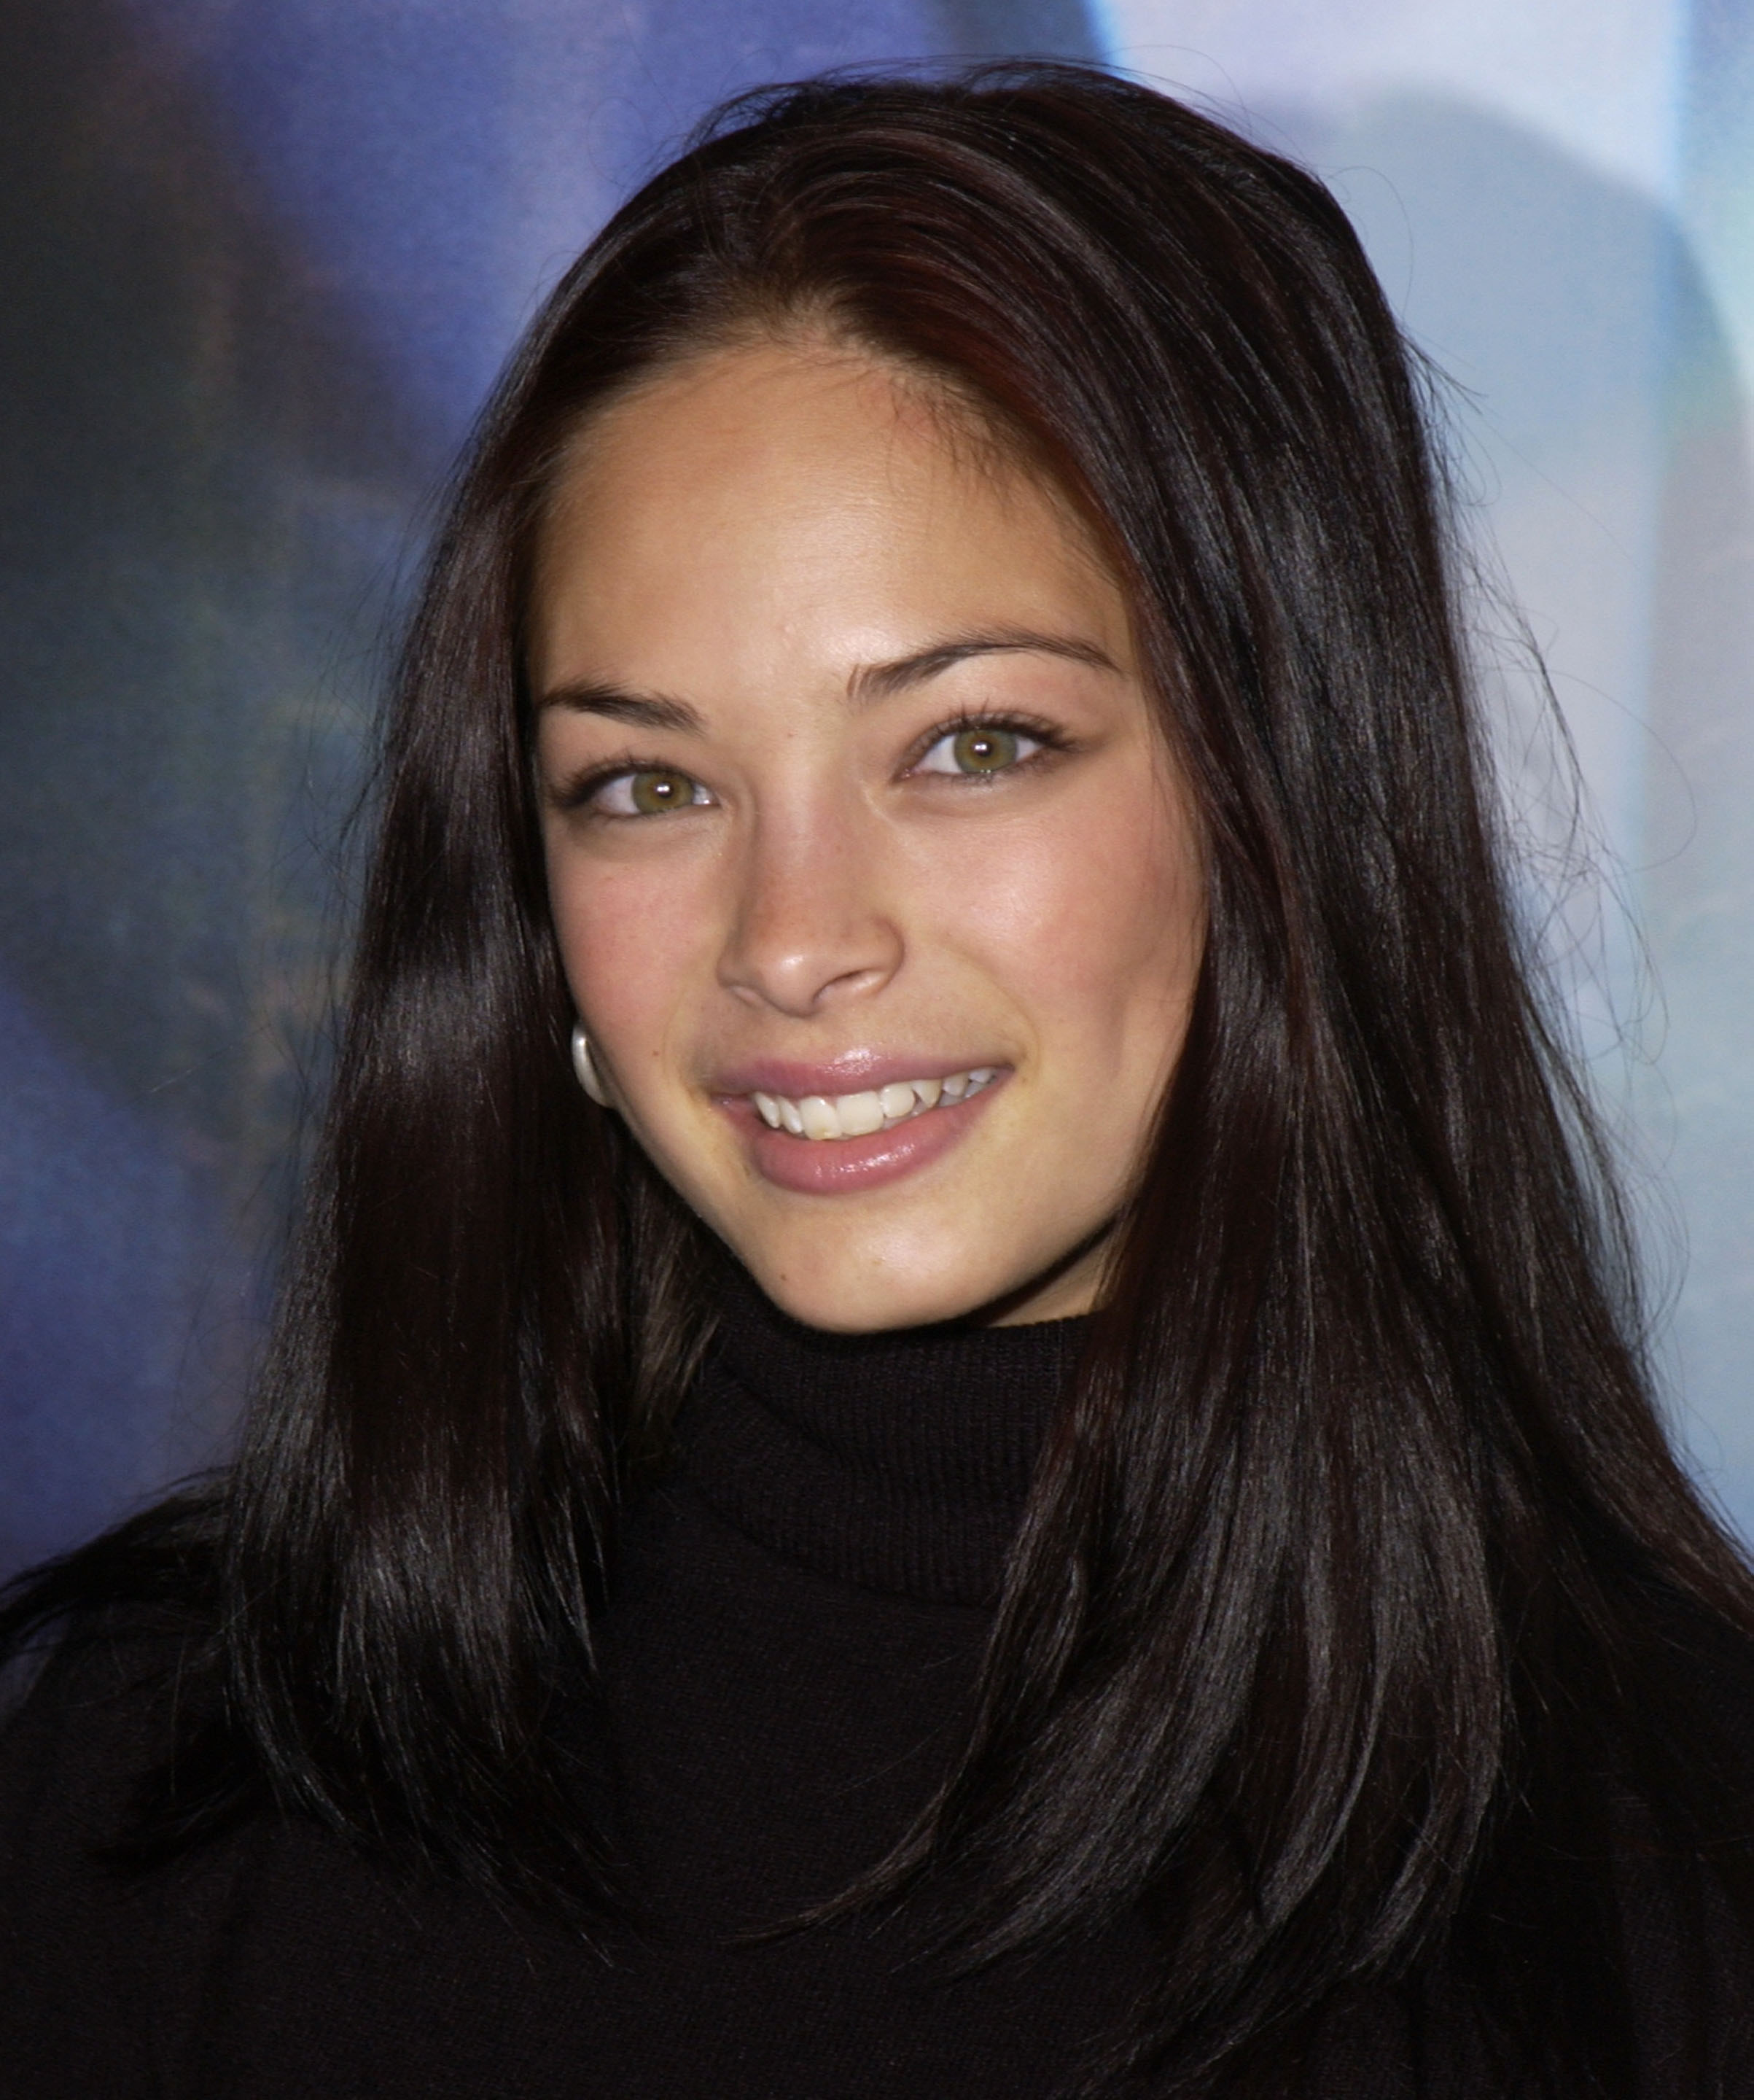 Kristin Kreuk smiles with her hair down and wears a black turtleneck